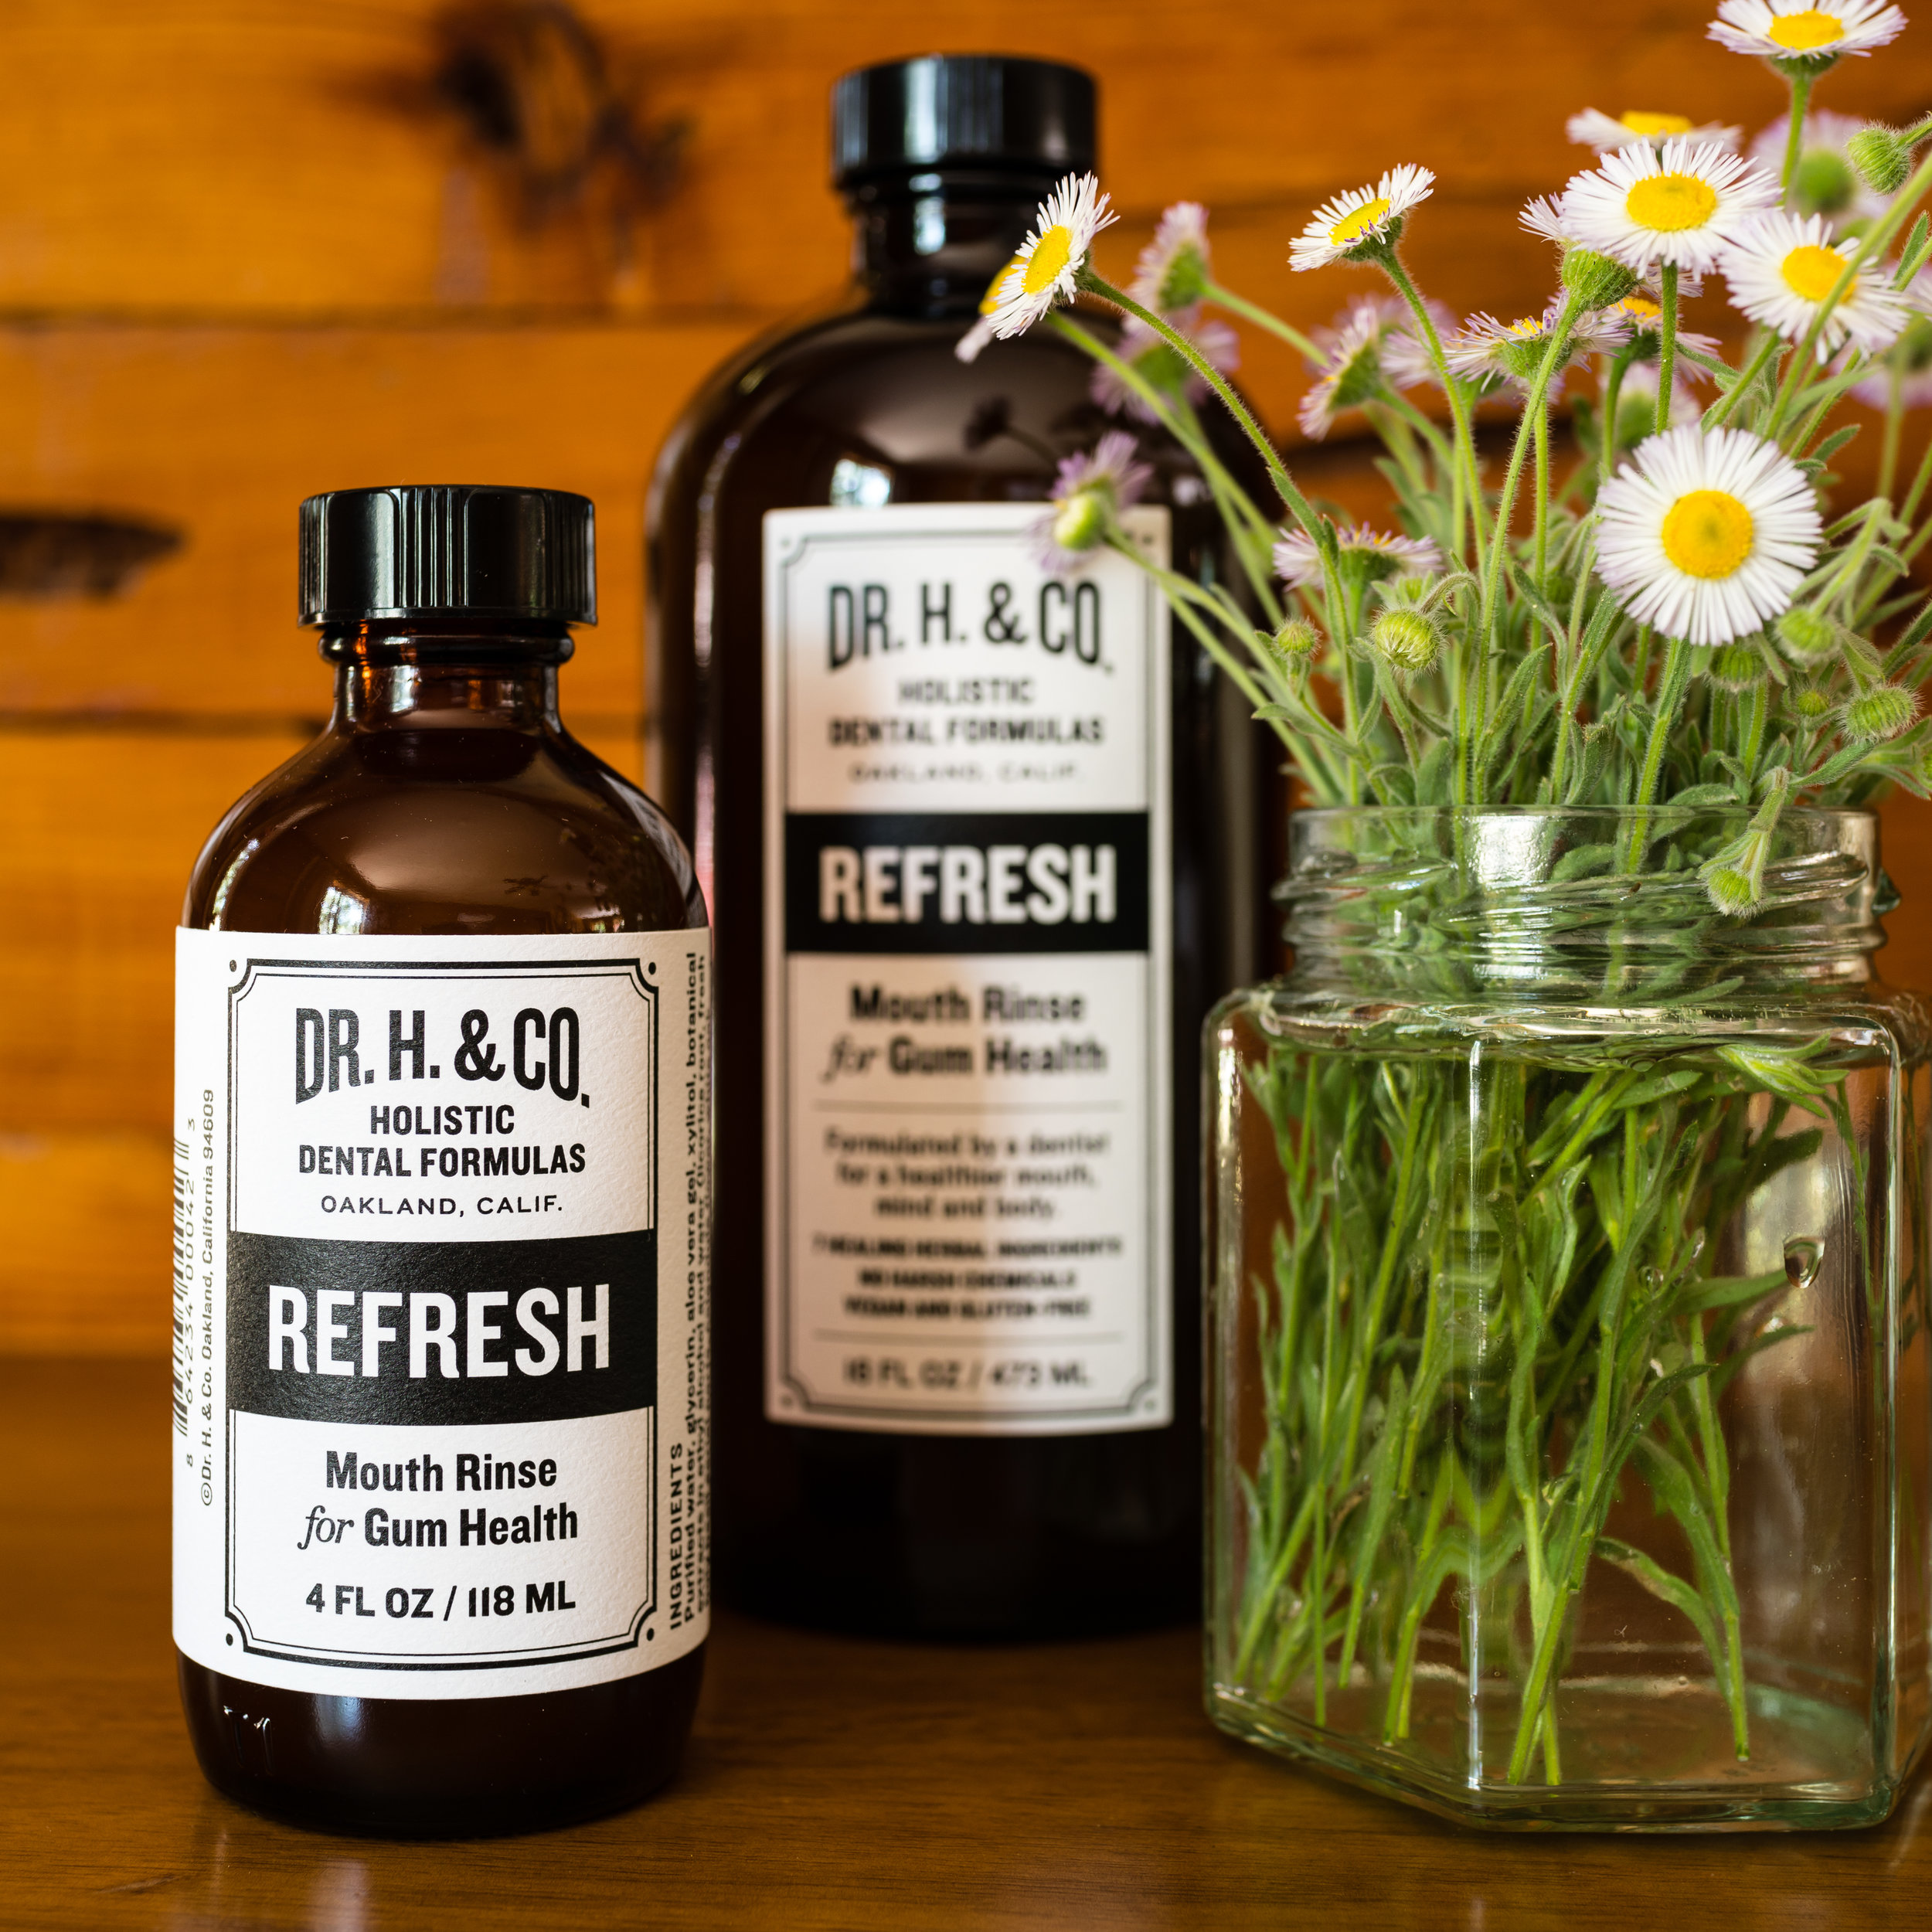 Dr. H. & Co. Refresh Mouthwash All Natural Herbal & Holistic Mouthwash for Healthy Gums & Teeth